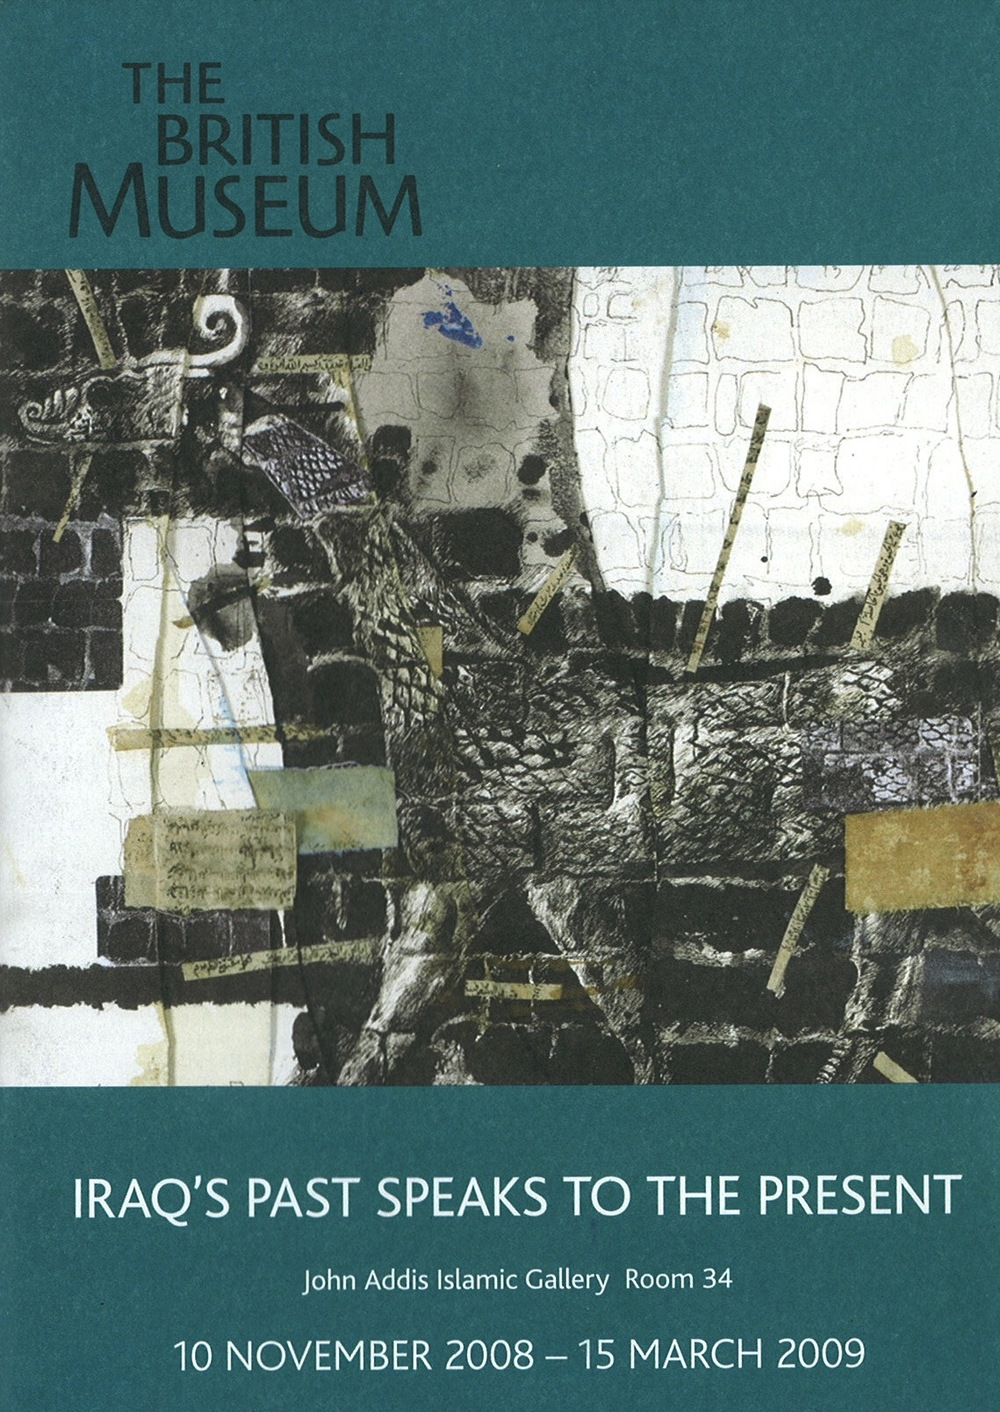 Iraq's Past Speaks to the Present John Addis Islamic Gallery British Museum London 2008